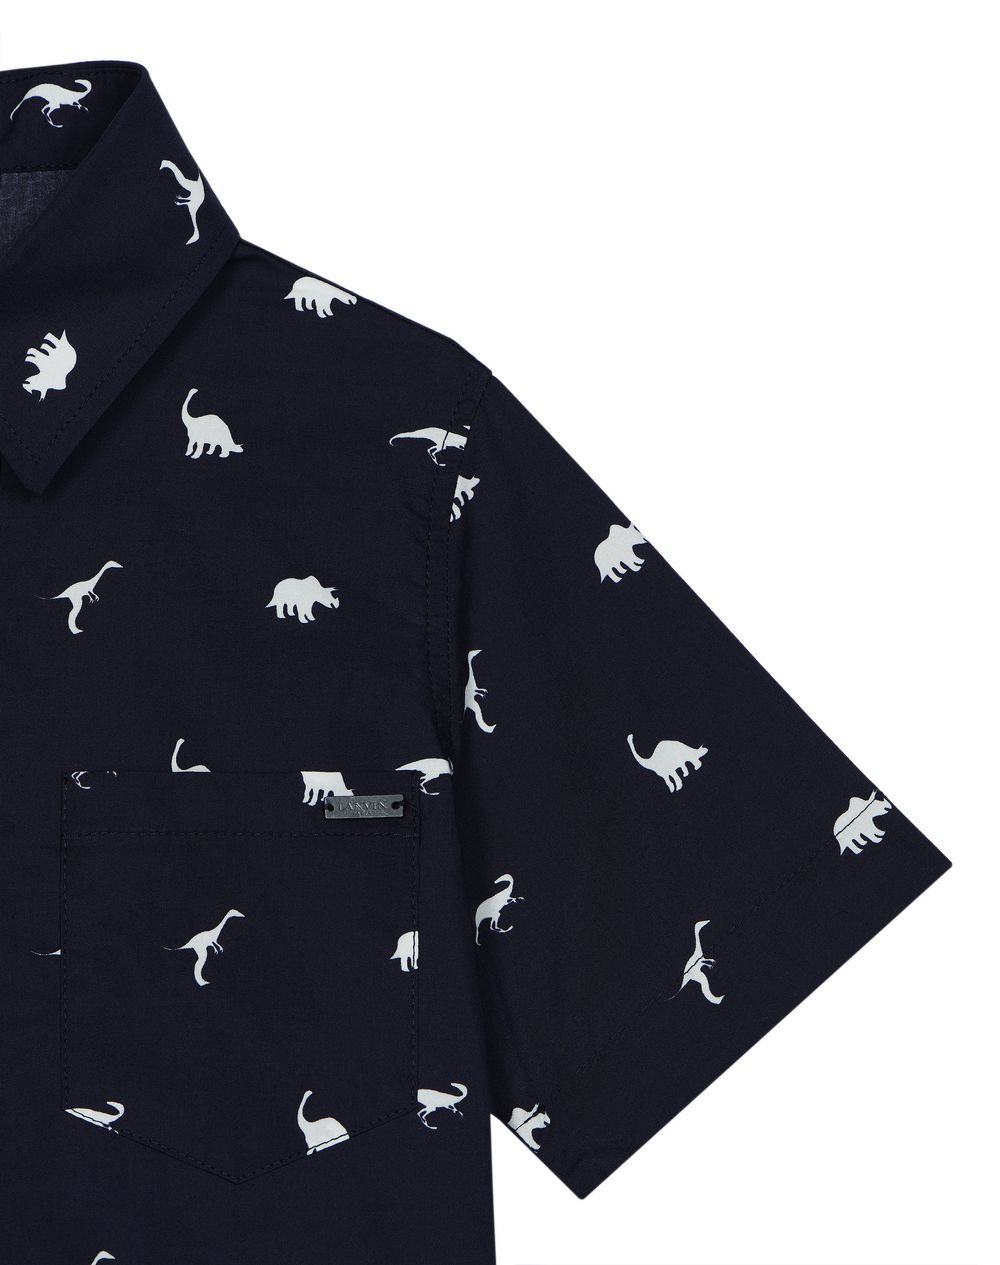 PRINTED NAVY BLUE BOWLING SHIRT    - Lanvin